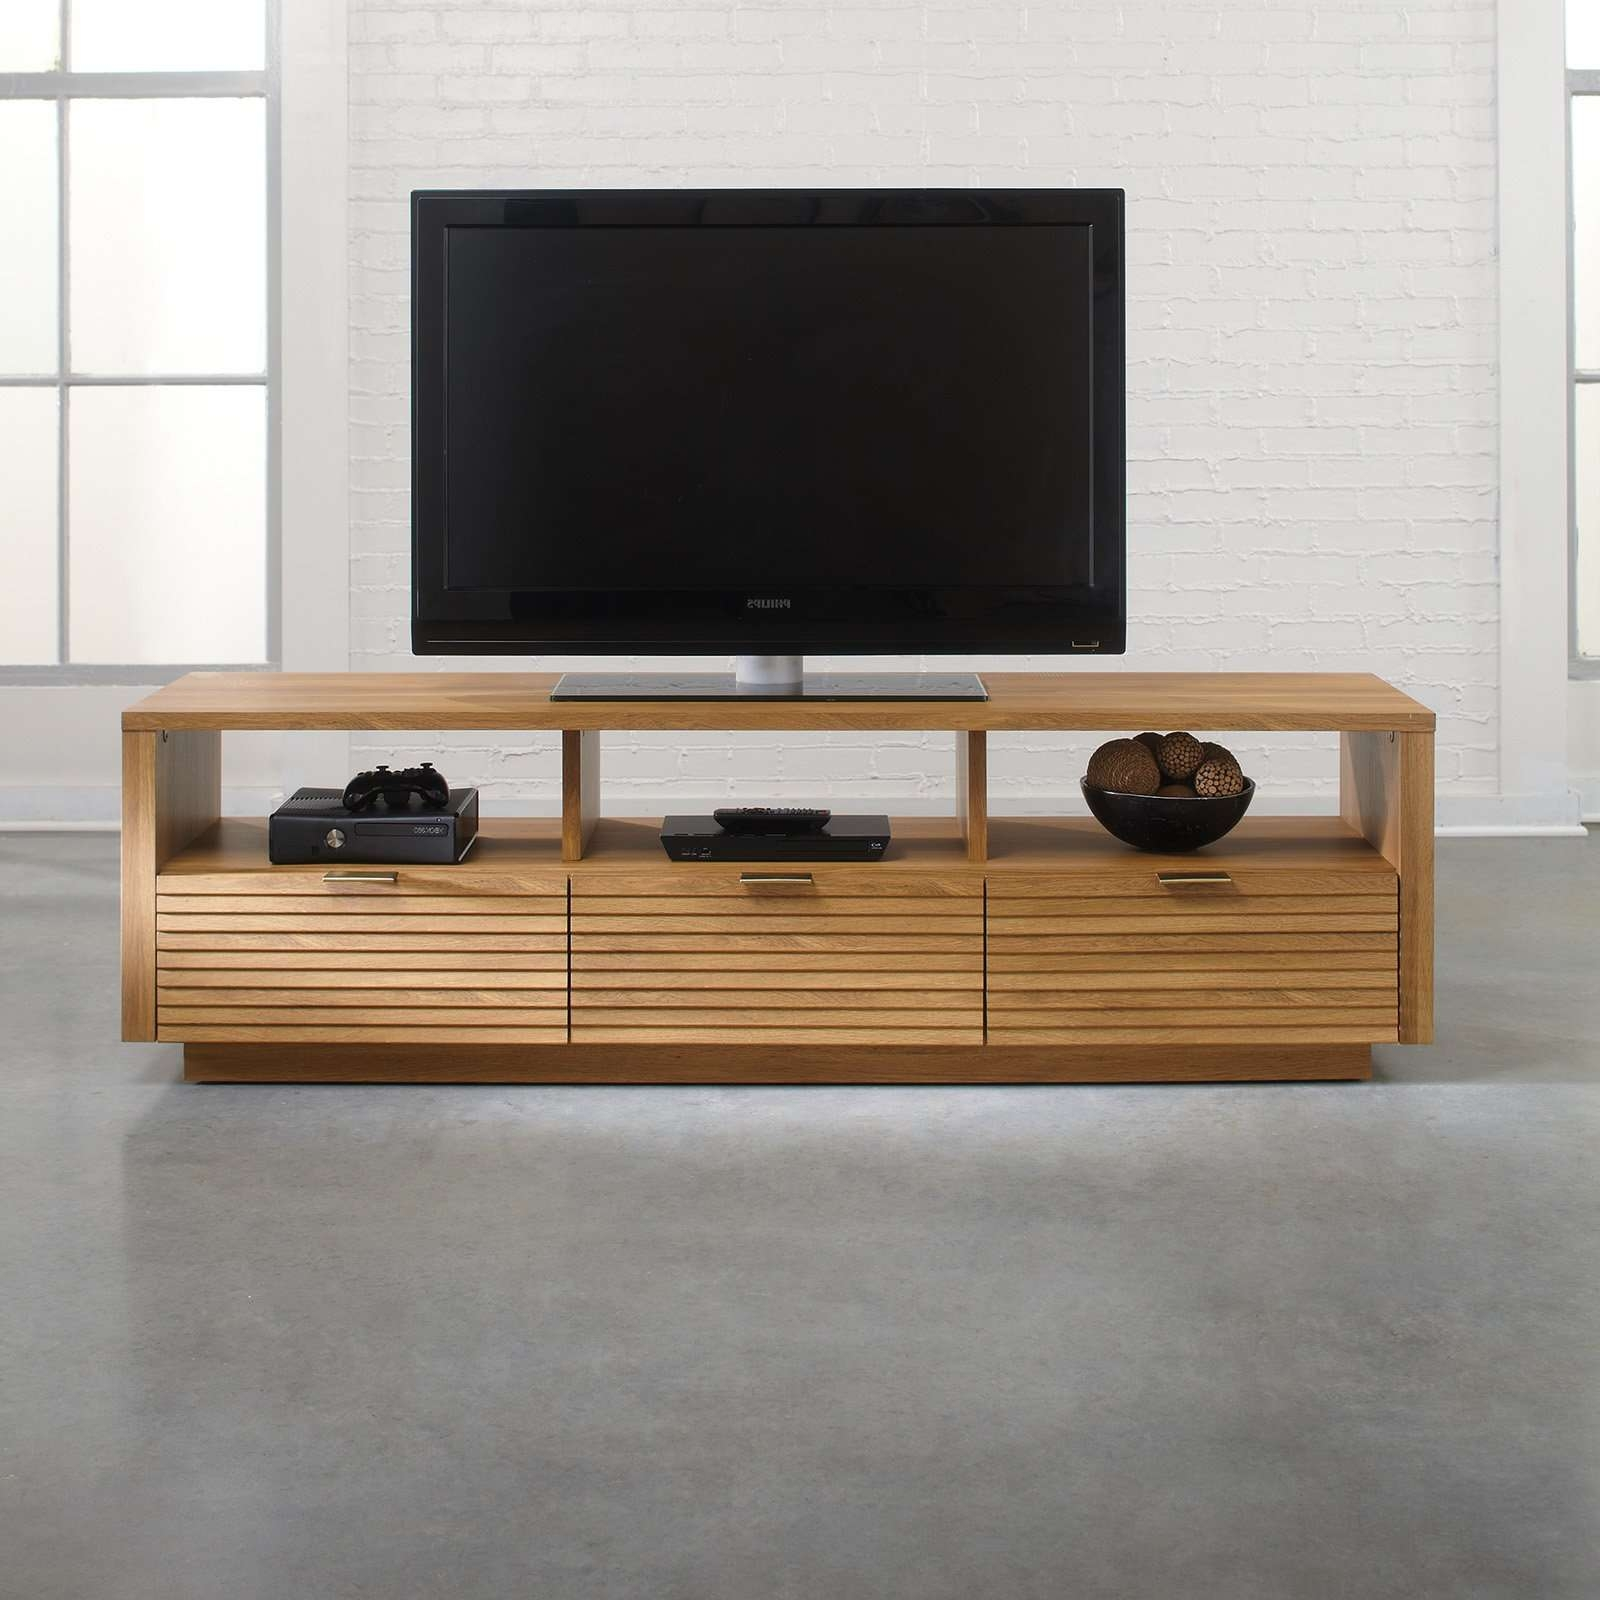 Belham Living Carter Mid Century Modern Tv Stand | Hayneedle Throughout Modern Low Profile Tv Stands (View 5 of 20)